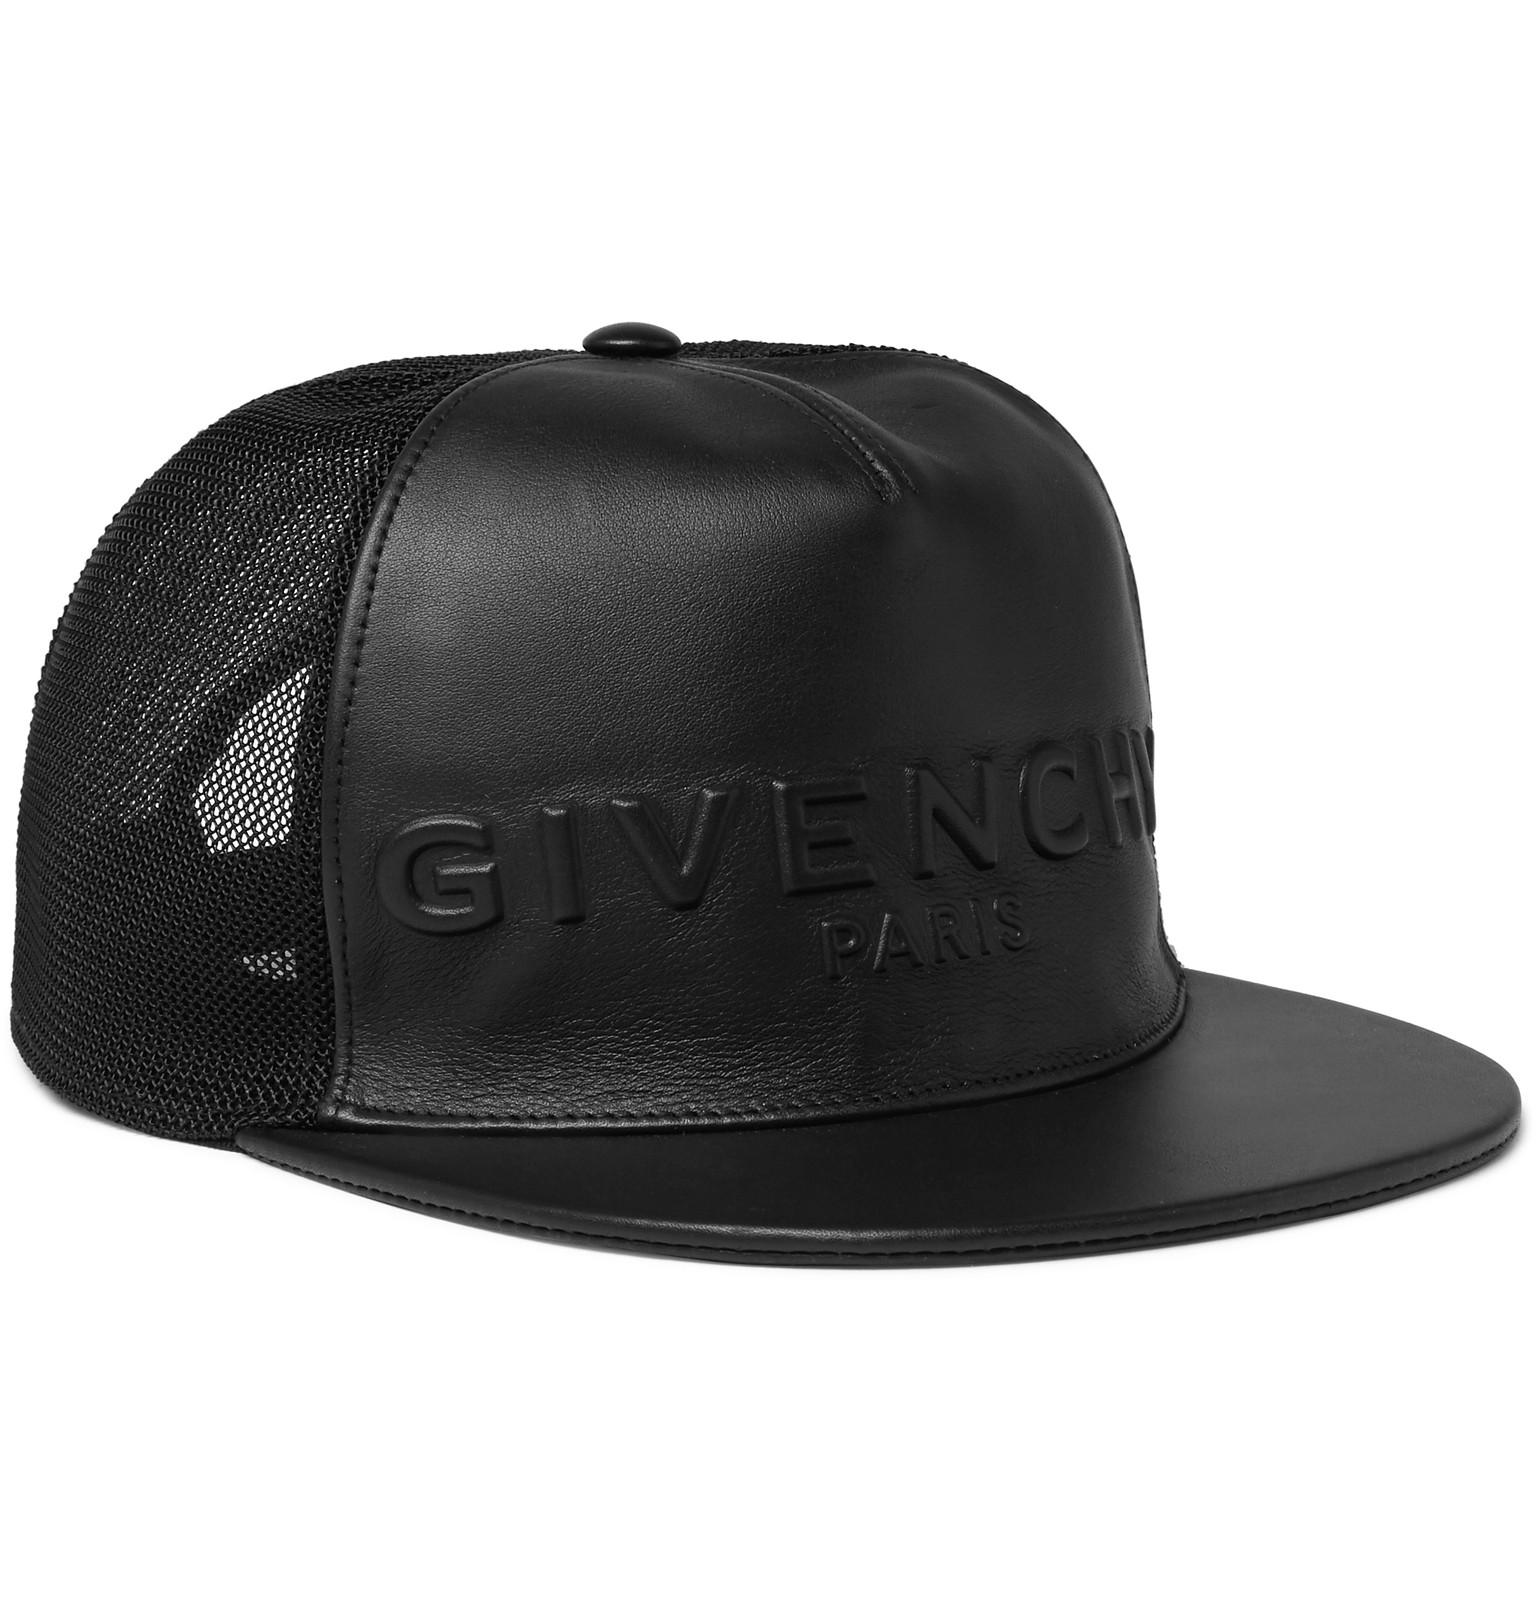 7af84c501c4 Givenchy Leather And Mesh Baseball Cap in Black for Men - Lyst